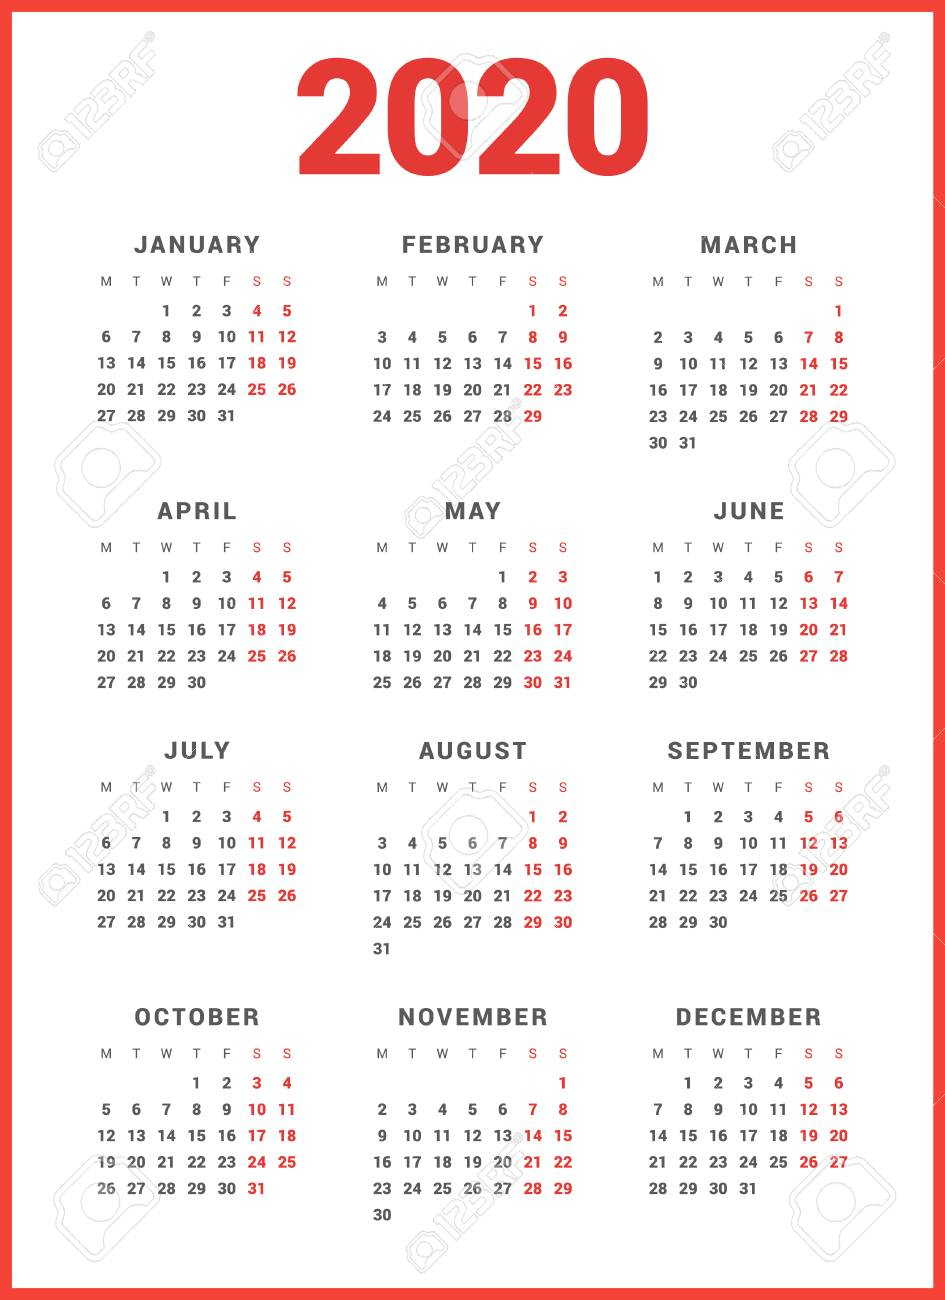 Calendar For 2020 Year On White Background. Week Starts Monday with regard to 2020 Calendar Template Monday Start